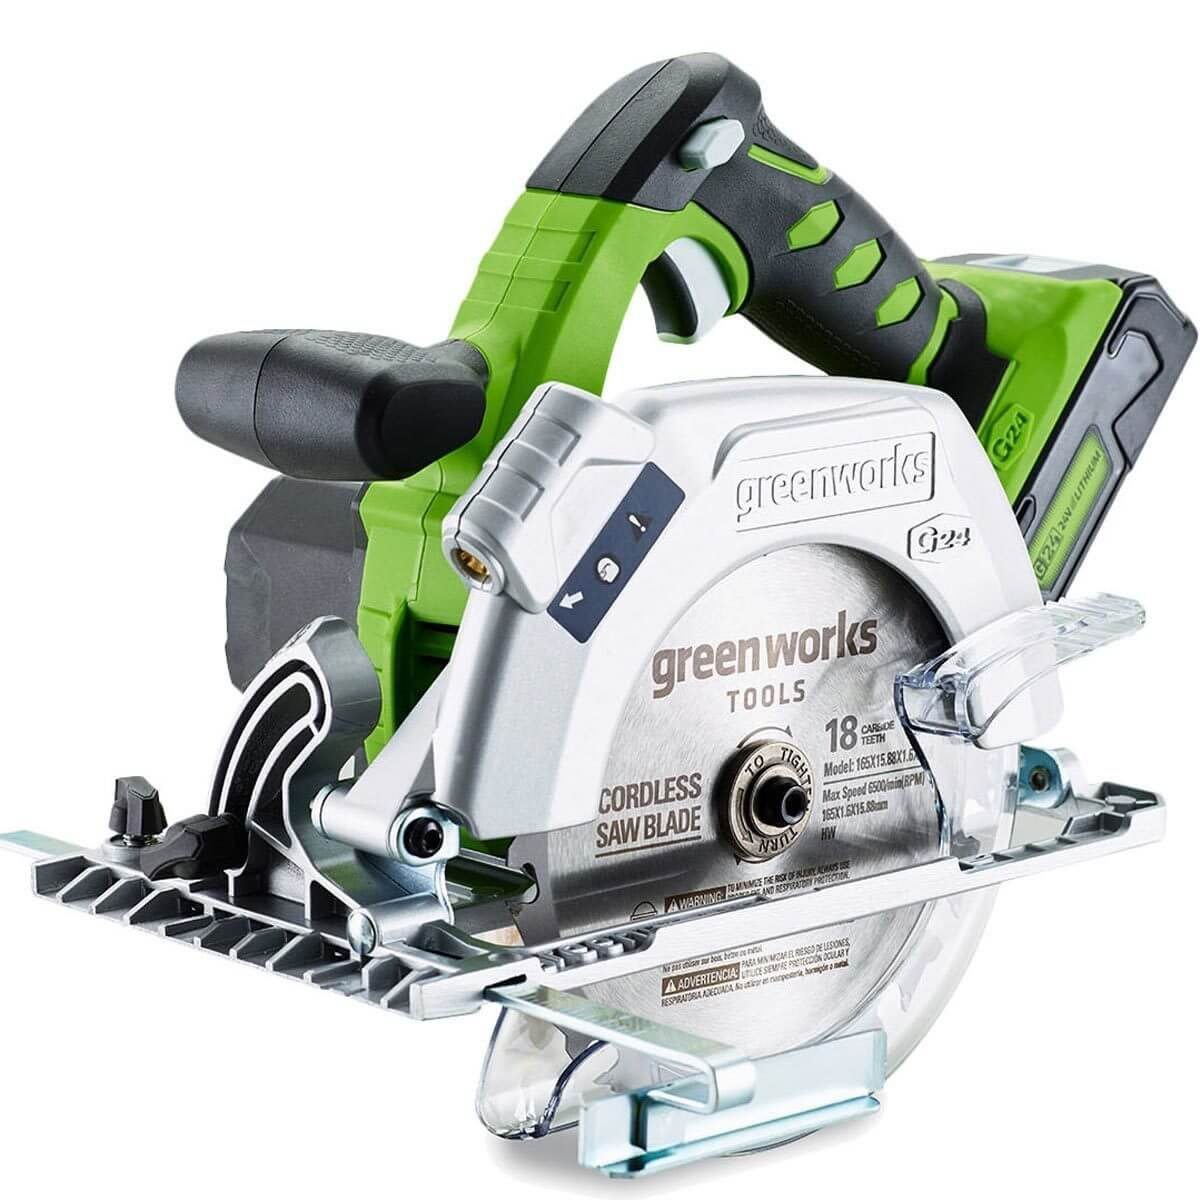 costco greenworks circular saw